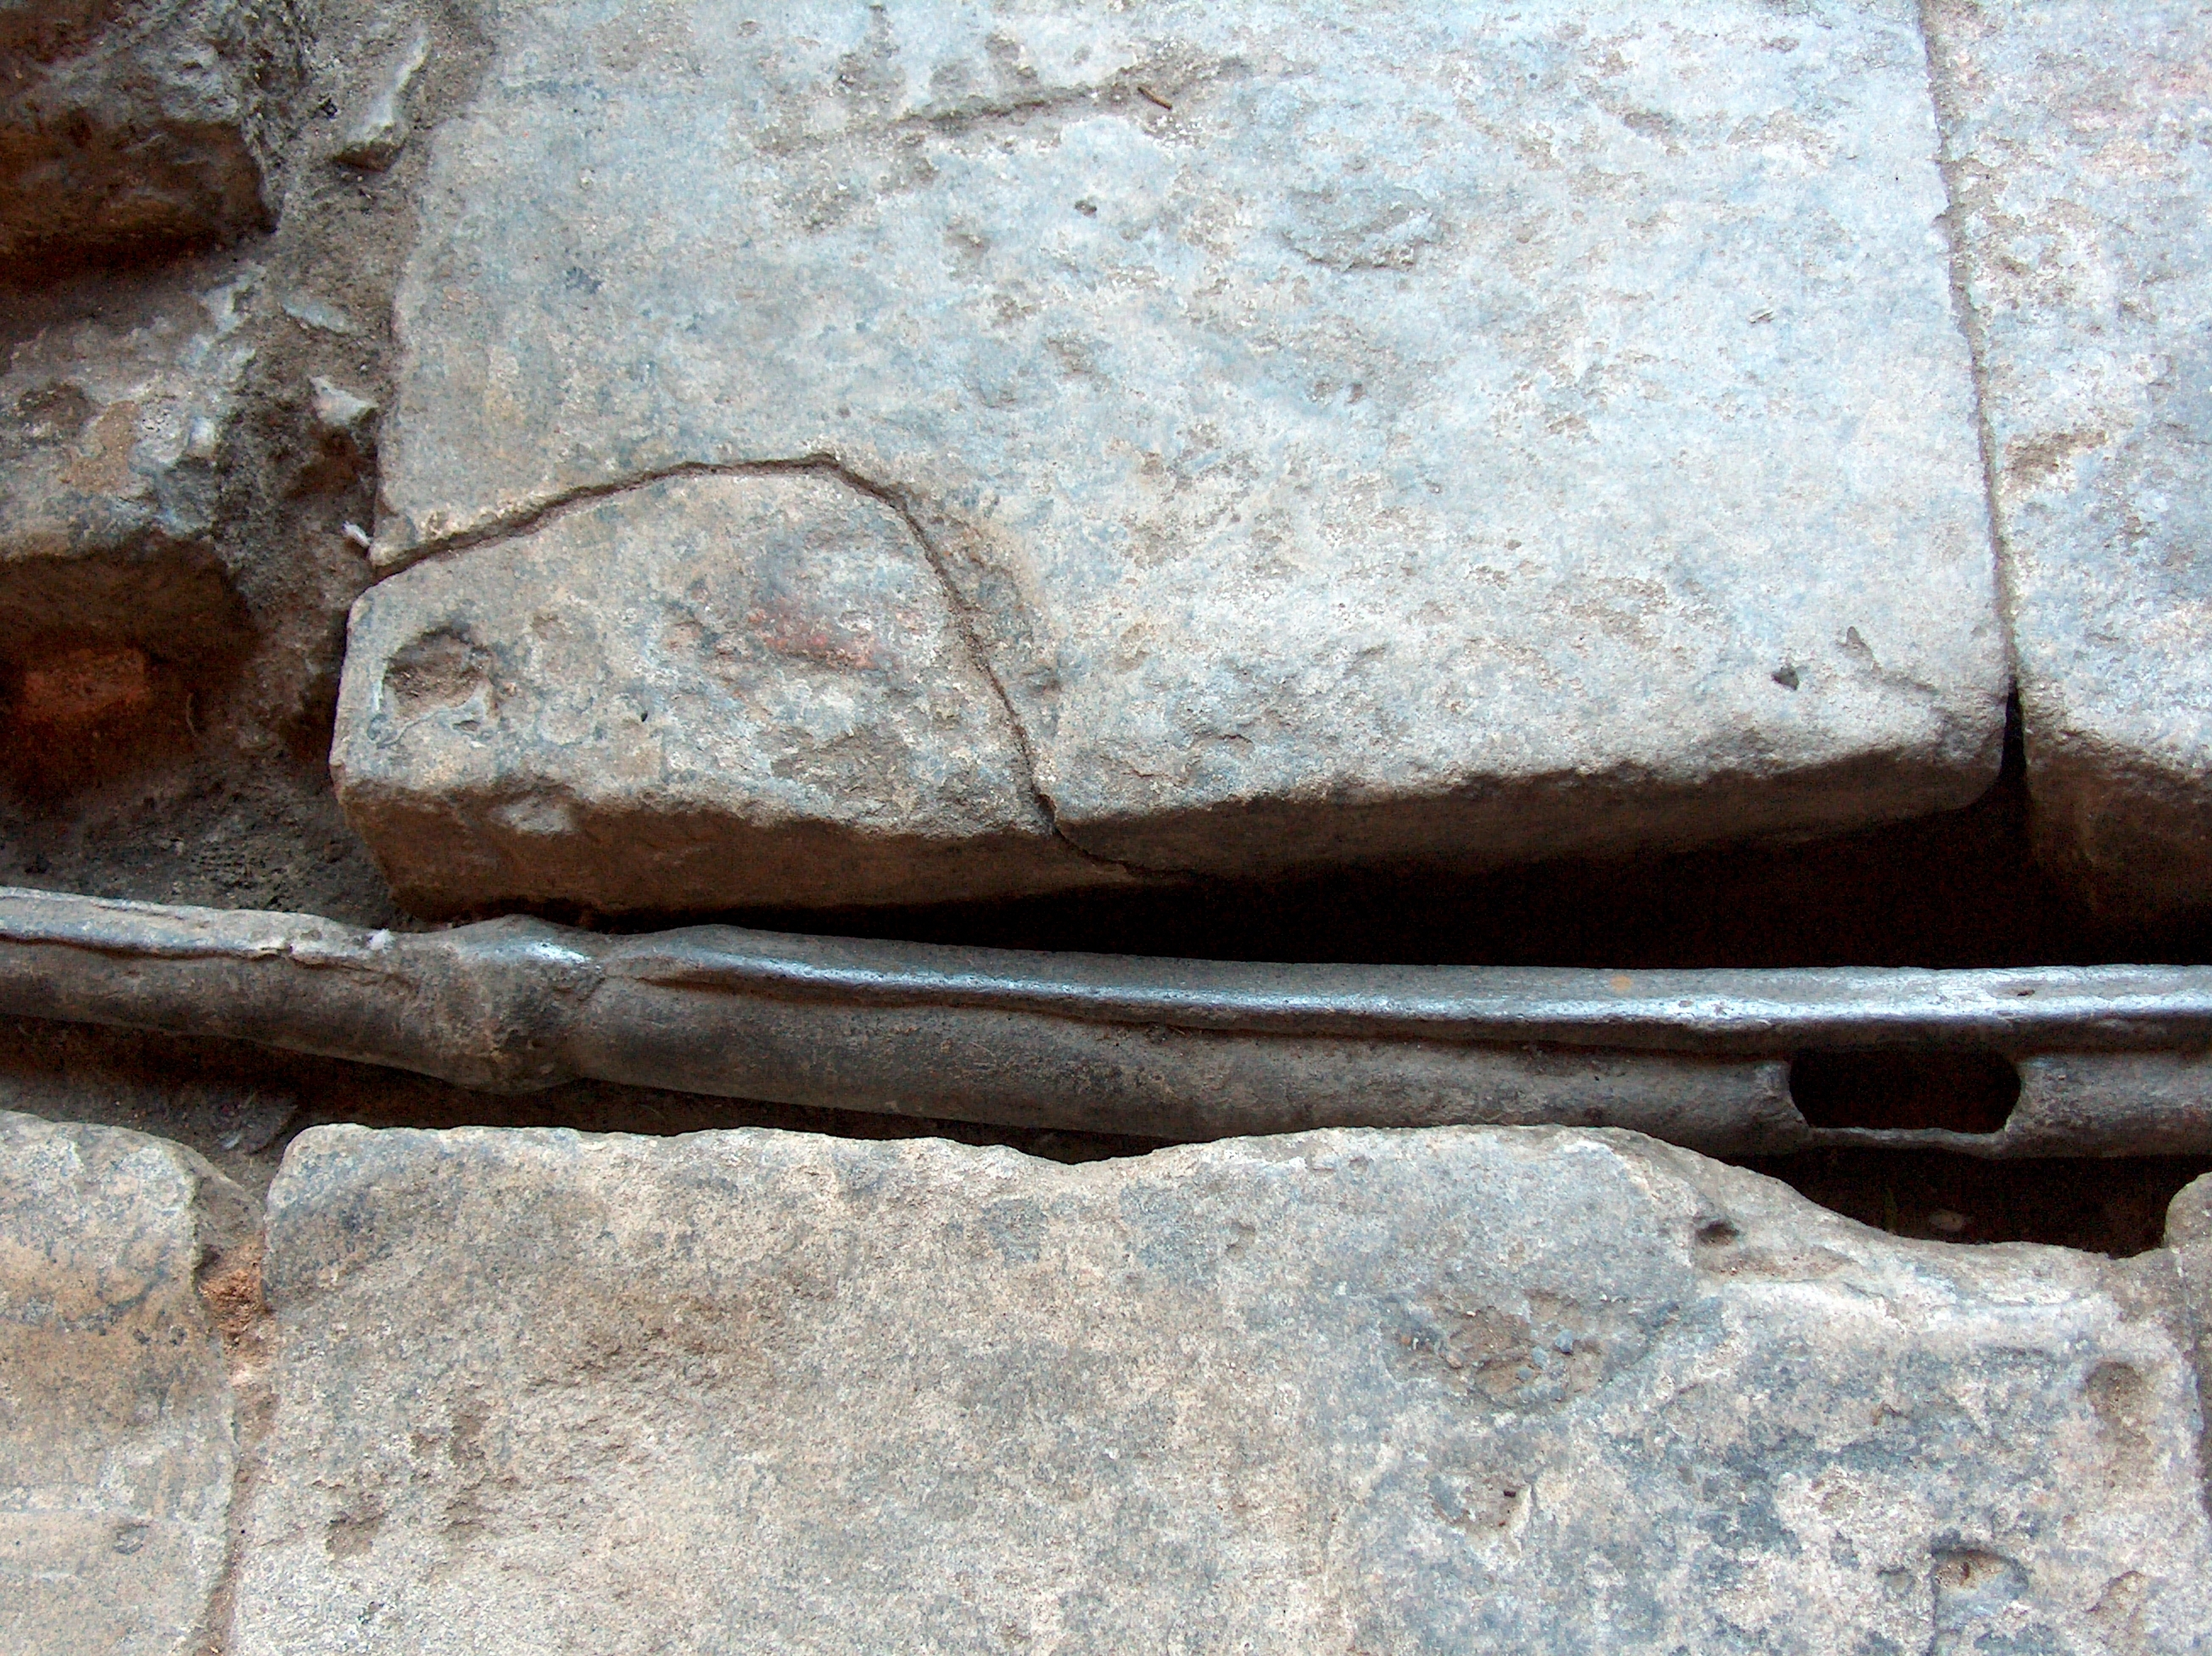 Lead Pipe at Roman Bath in Bath, England